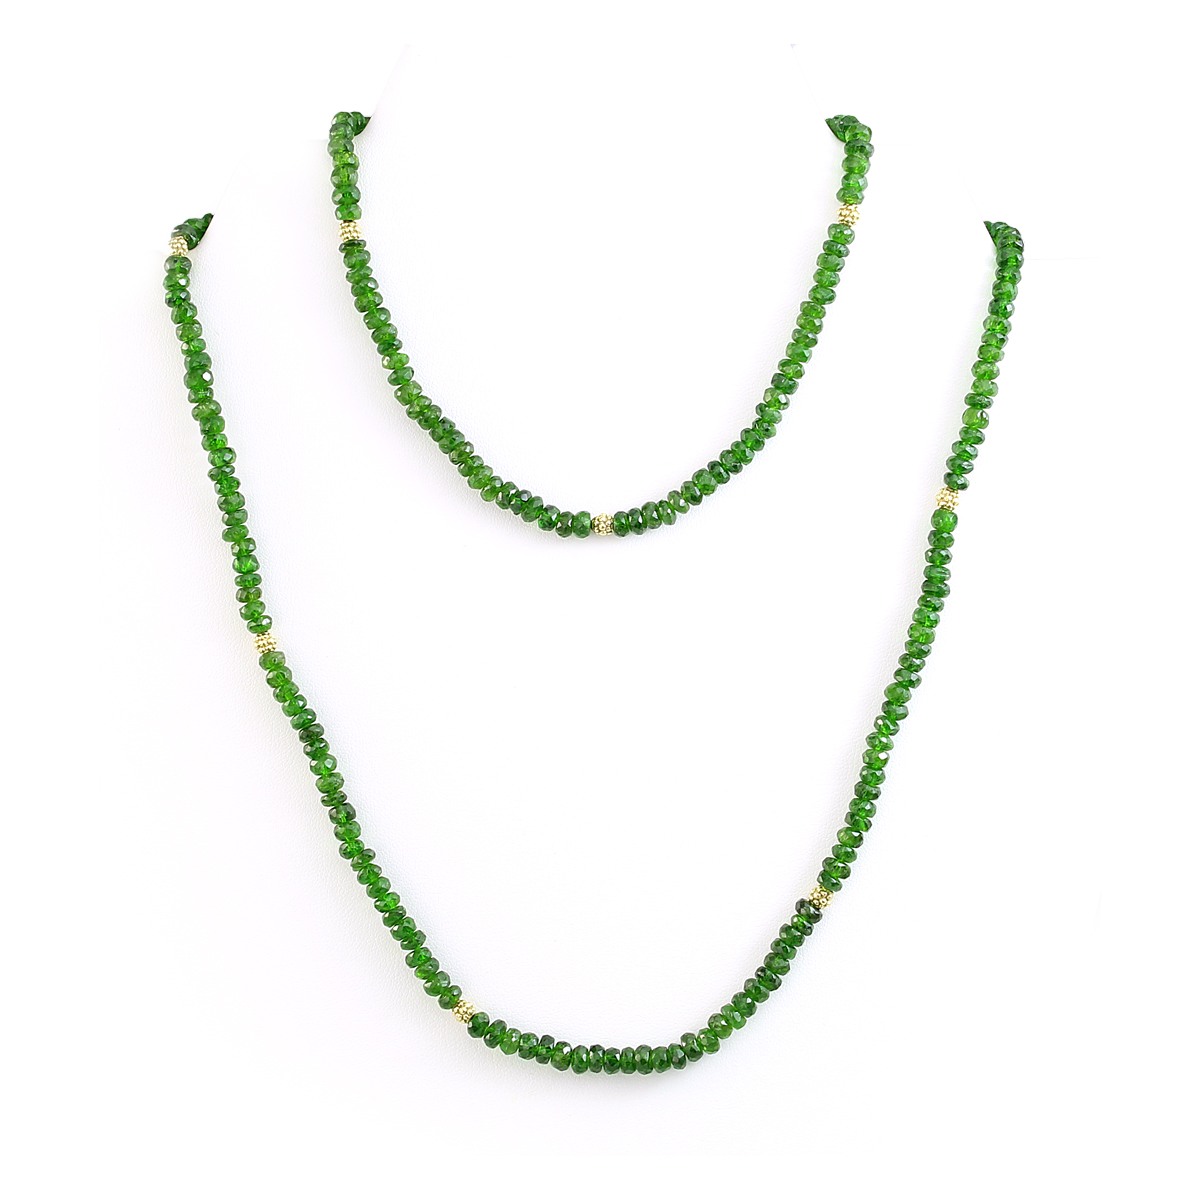 Lauren K 18 Karat Yellow Gold Chromediopside Bead Necklace